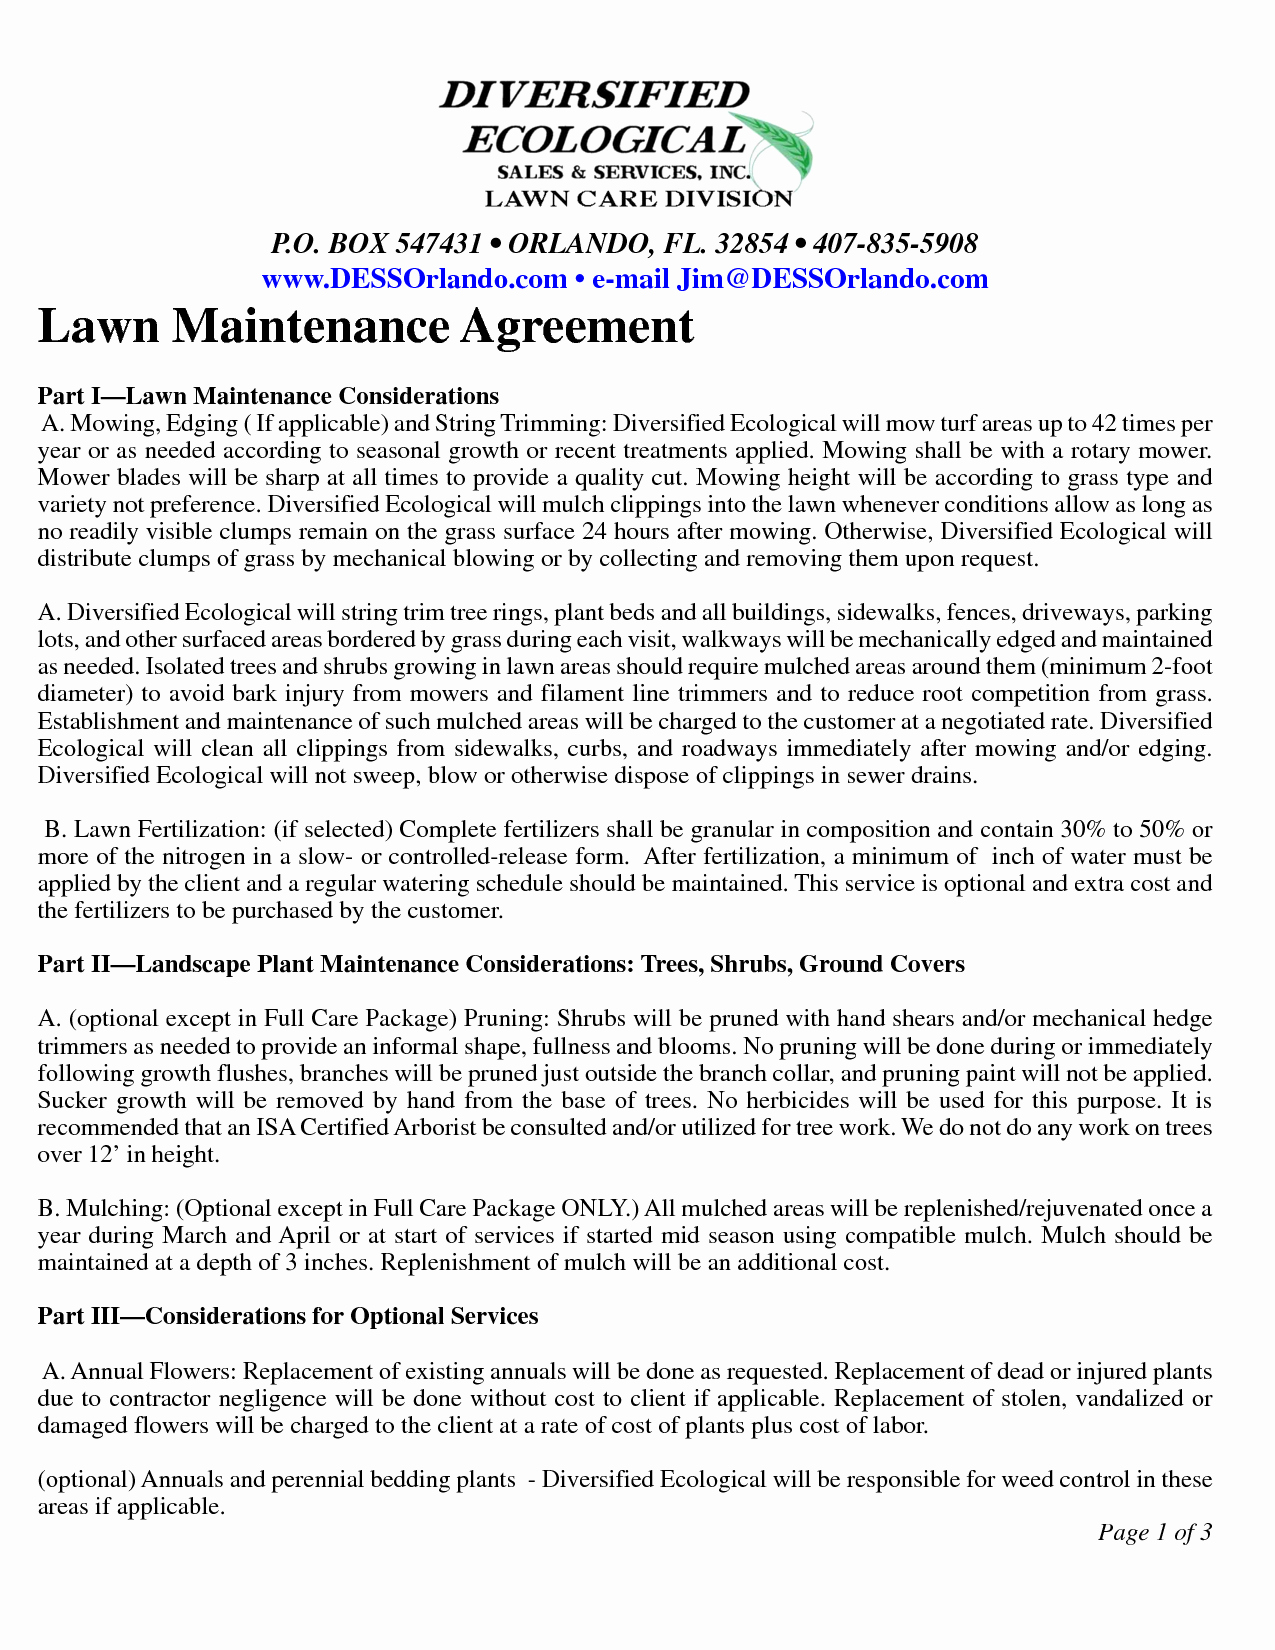 Lawn Service Contract Template Fresh Lawn Maintenance Contract Agreement Free Printable Documents